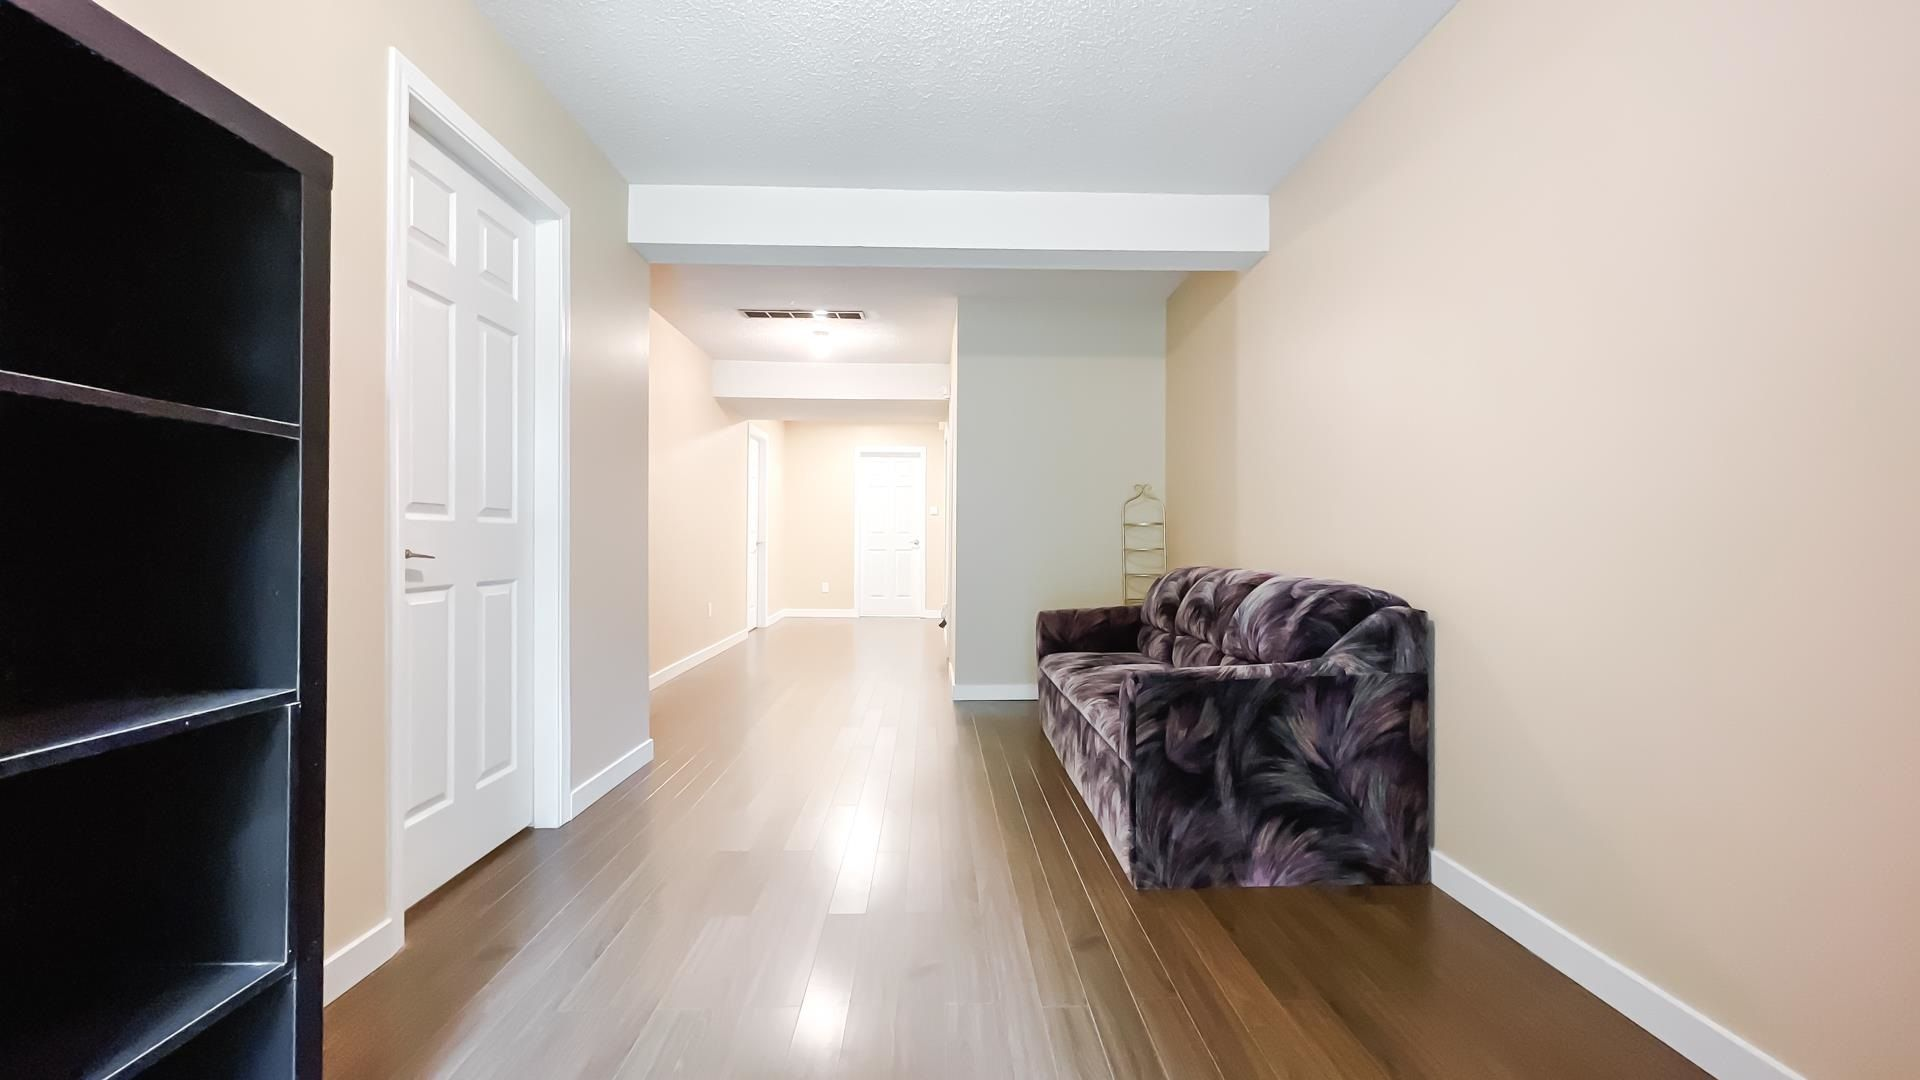 Photo 21: Photos: 66 9000 ASH GROVE CRESCENT in Burnaby: Forest Hills BN Townhouse for sale (Burnaby North)  : MLS®# R2603744